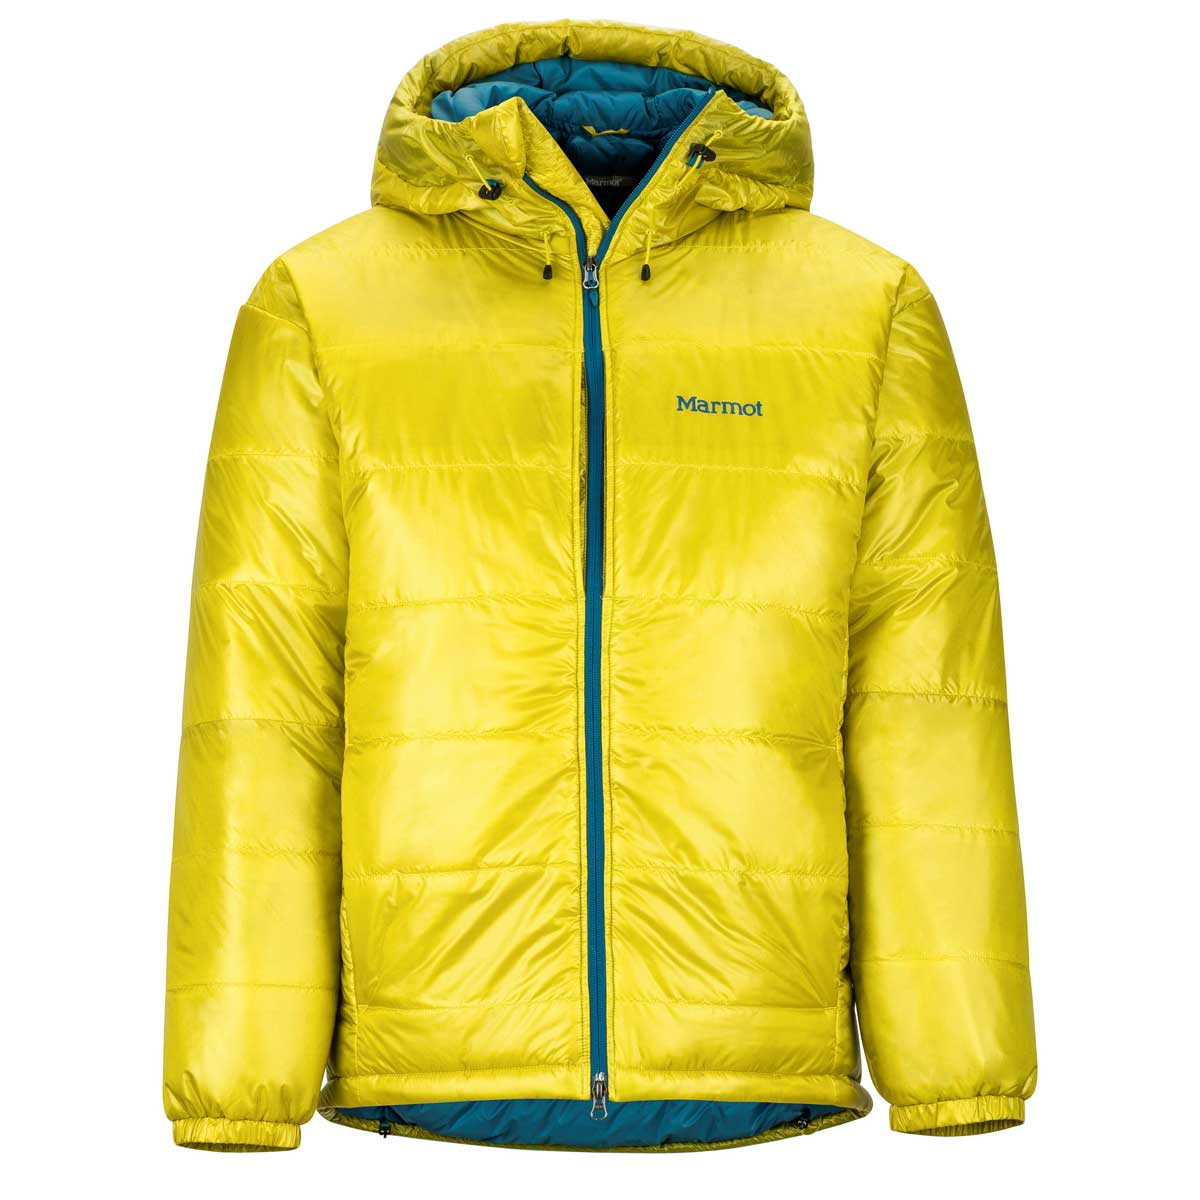 Marmot Men's West Rib Parka in Citronelle